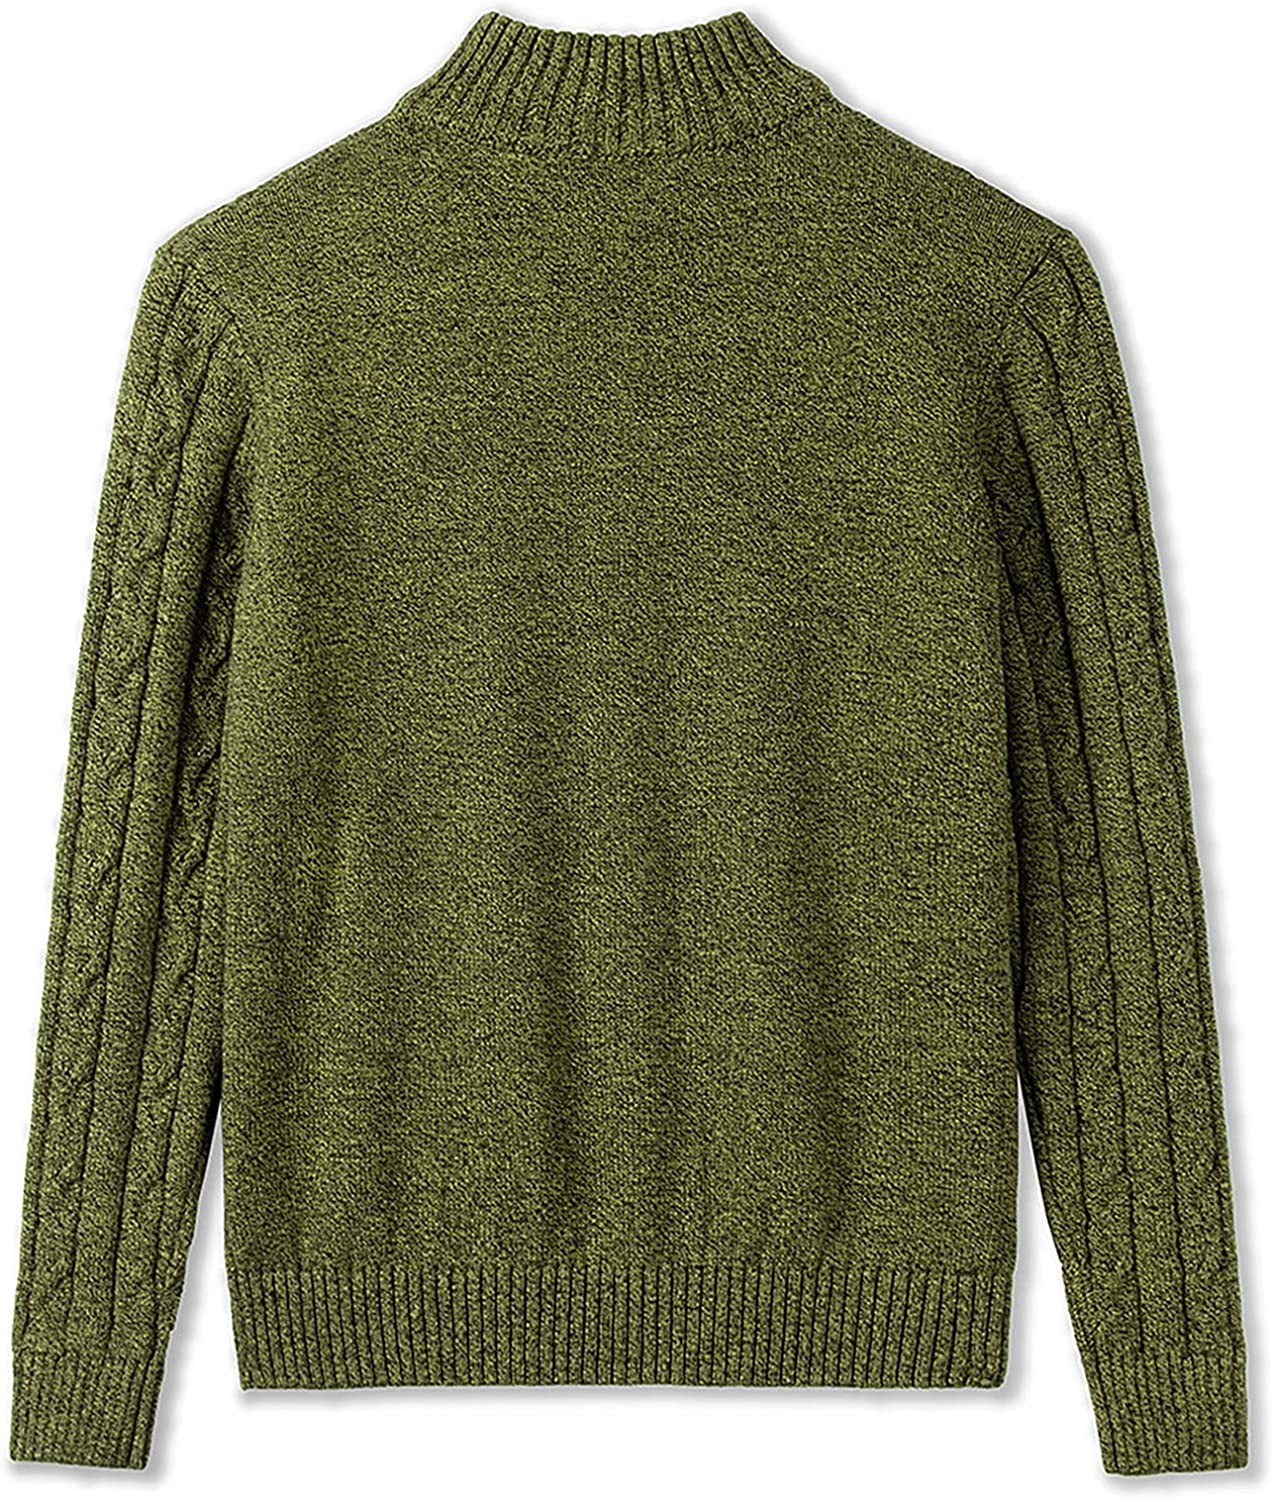 Amazon Essentials 1/4 Zip Sweater Casual Cable Knit Long Sleeve Pullover Sweatshirt for Boys Olivine 5-6X